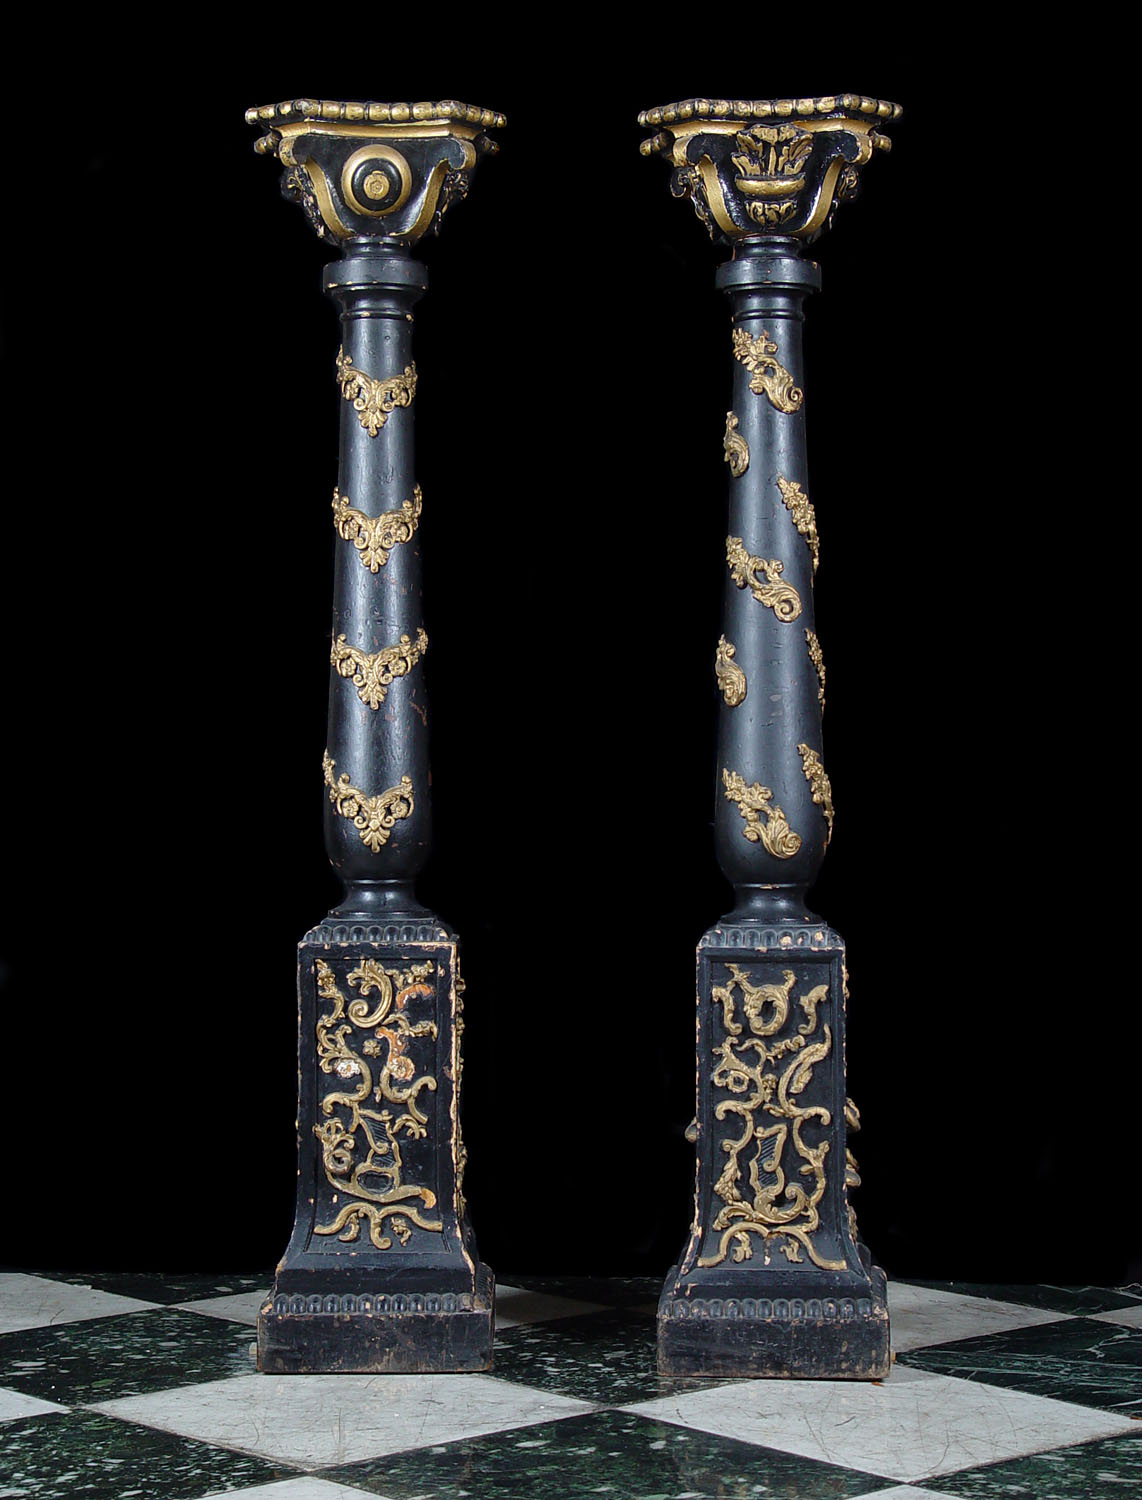 Antique Carved Wood Baroque Pedestals with baluster columns